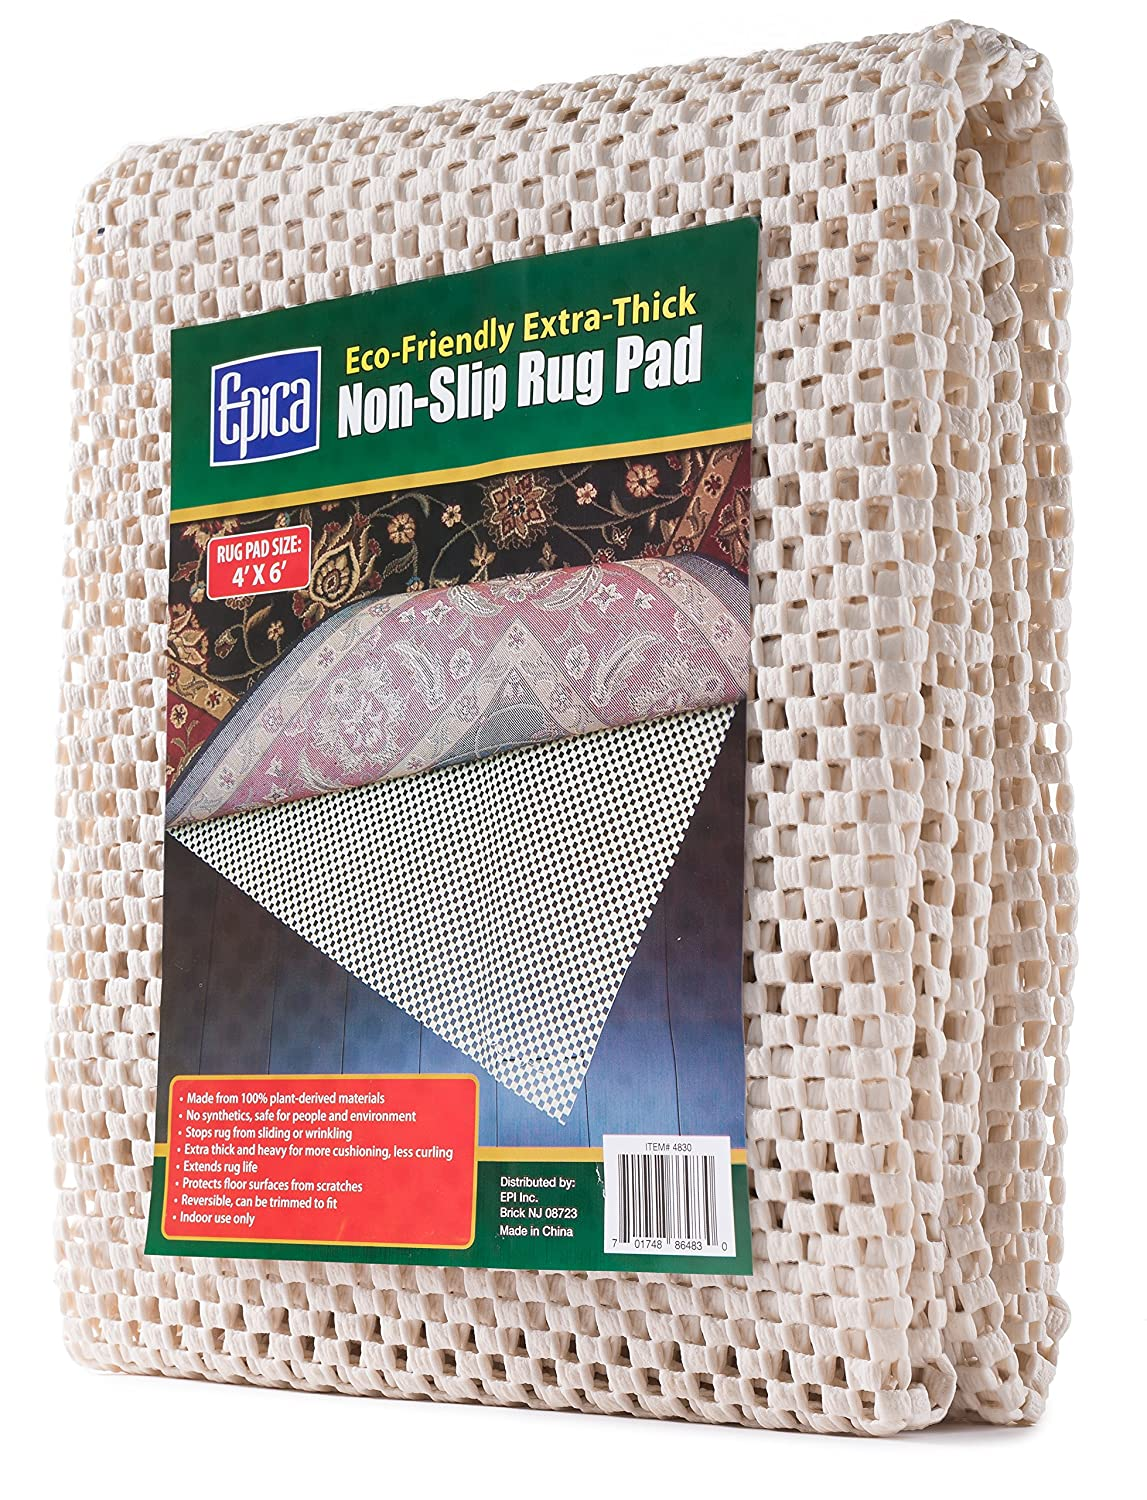 Amazon.com: Epica Extra Thick Non Slip Area Rug Pad 4 X 6 For Any Hard  Surface Floor, Keeps Your Rugs Safe And In Place: Kitchen U0026 Dining